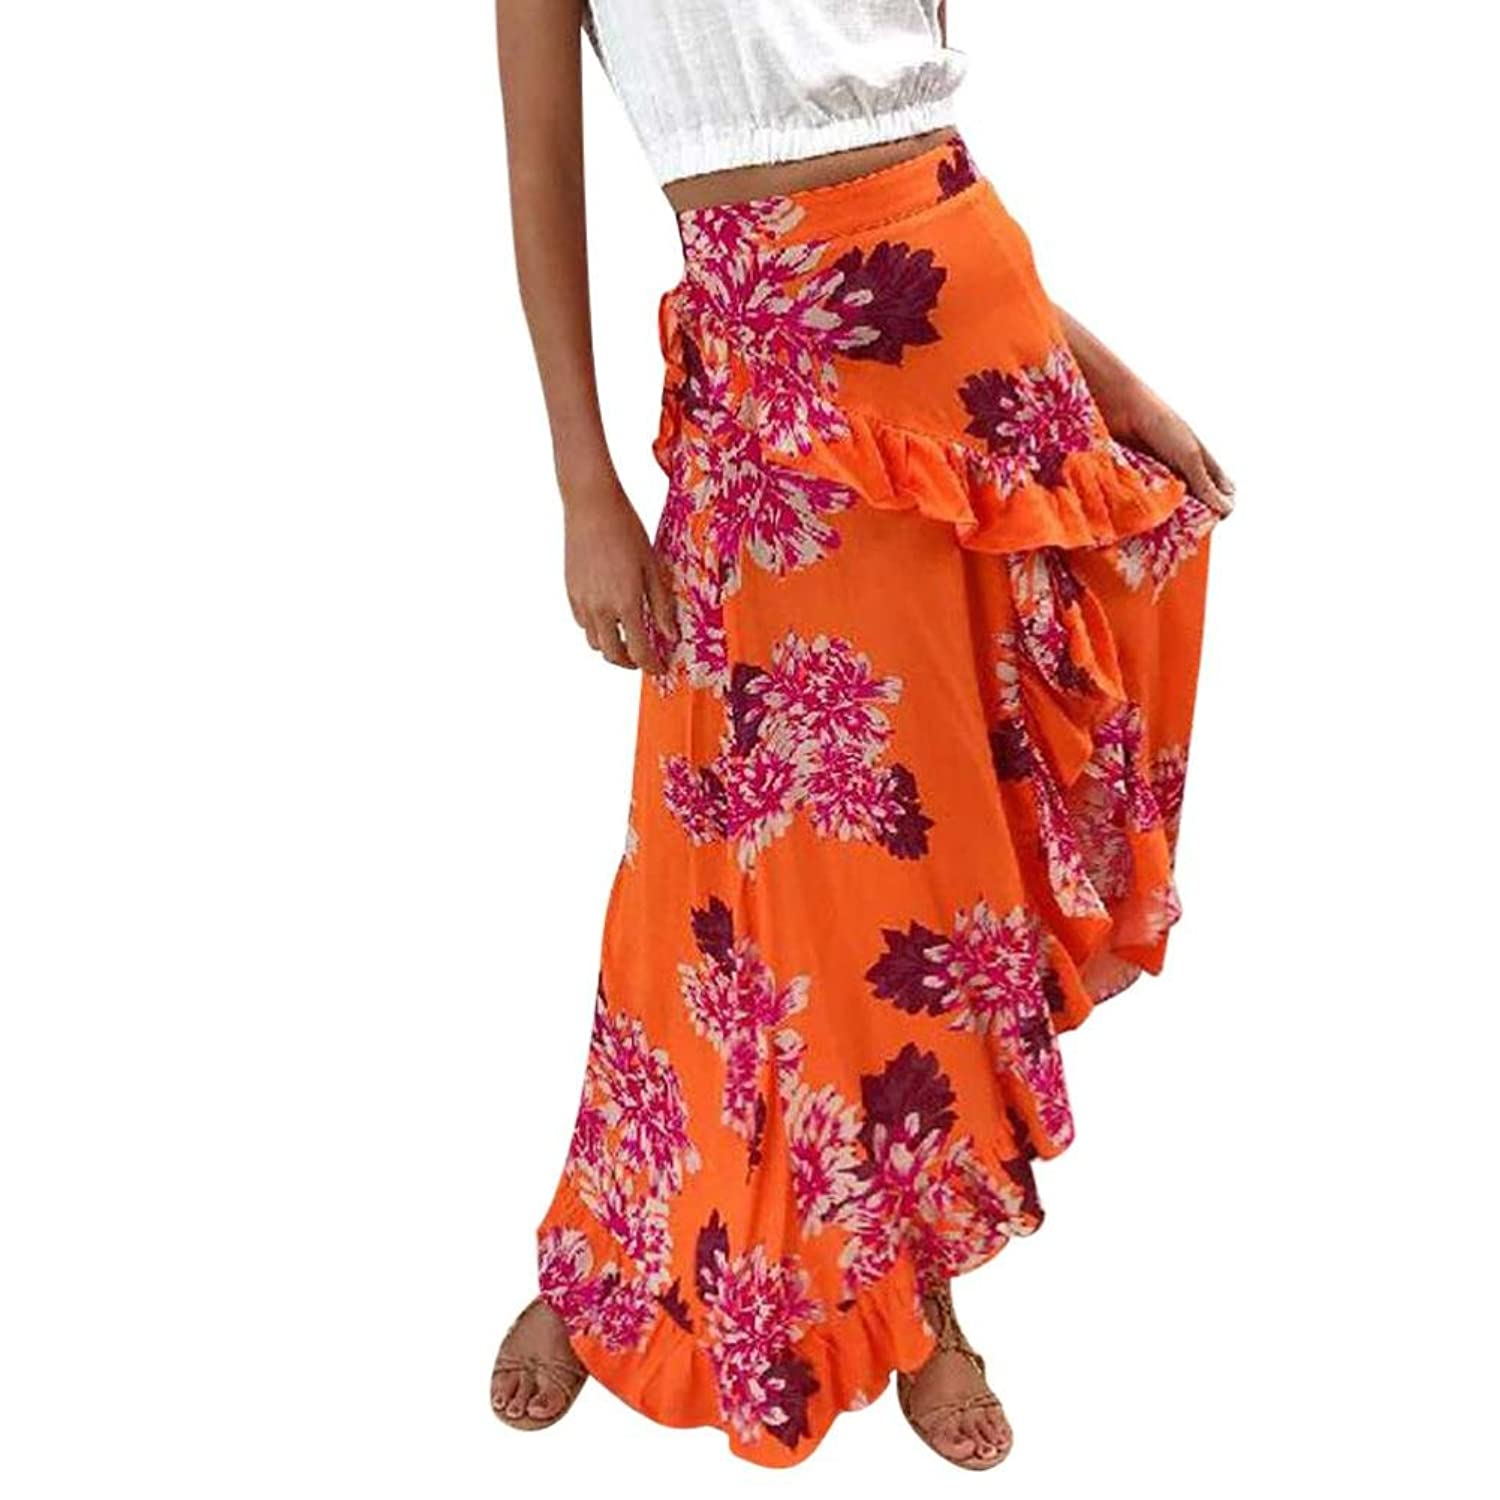 HHei_K Women Spring Fashion New Floral Printing Irregular Folds Ruffle Split Long Skirt